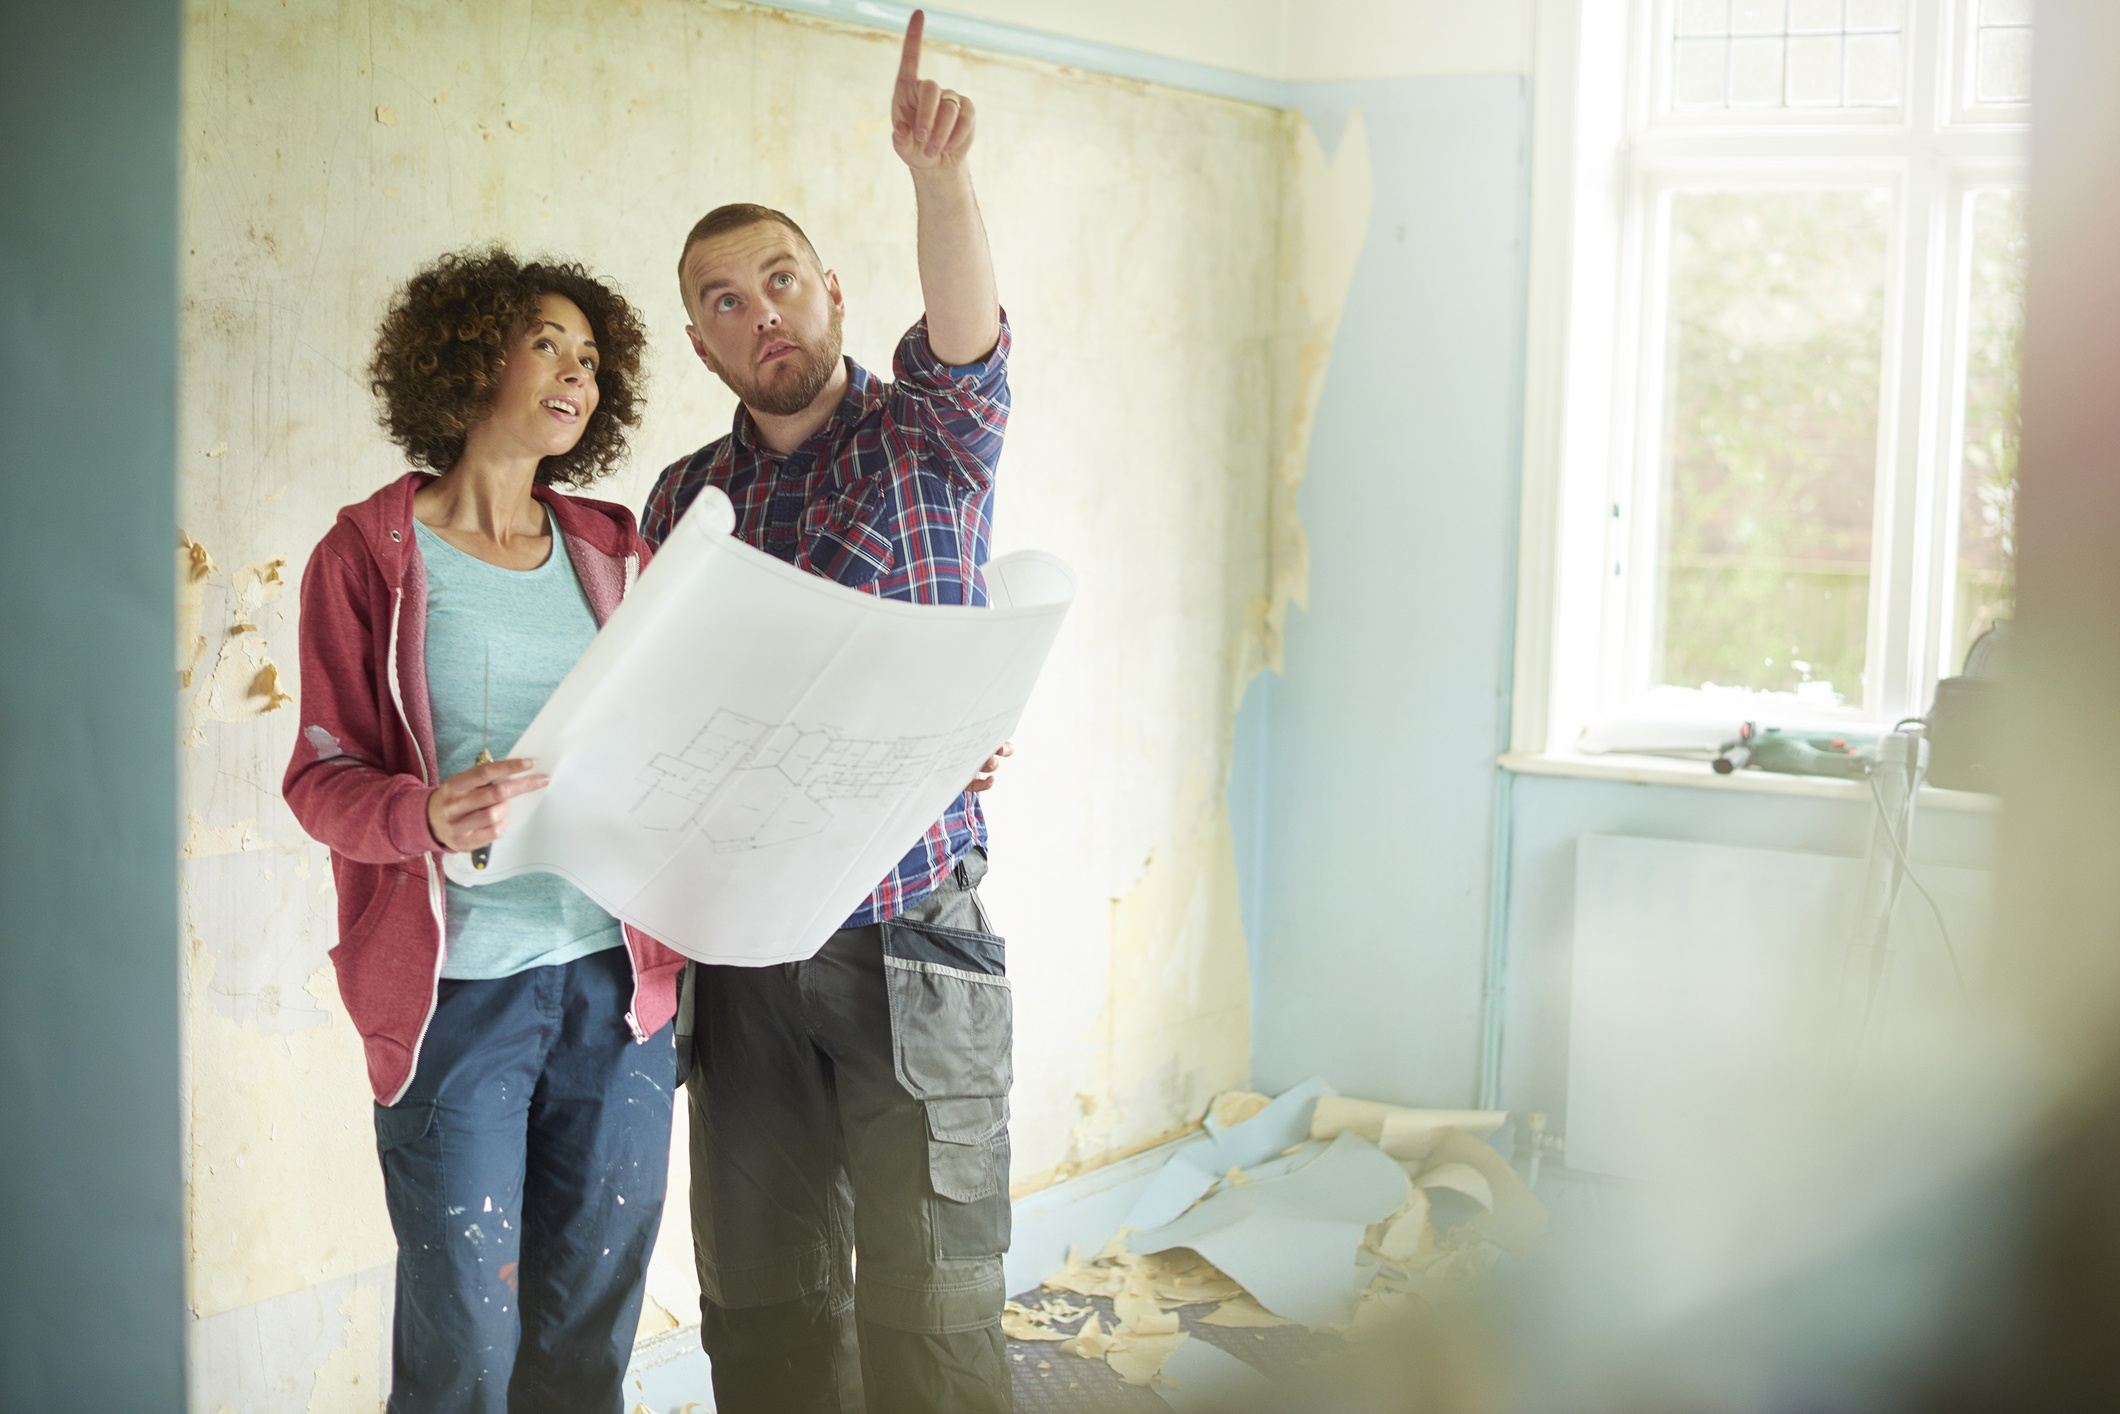 a young couple take time out from scraping walls in her new house to check against their architect plans